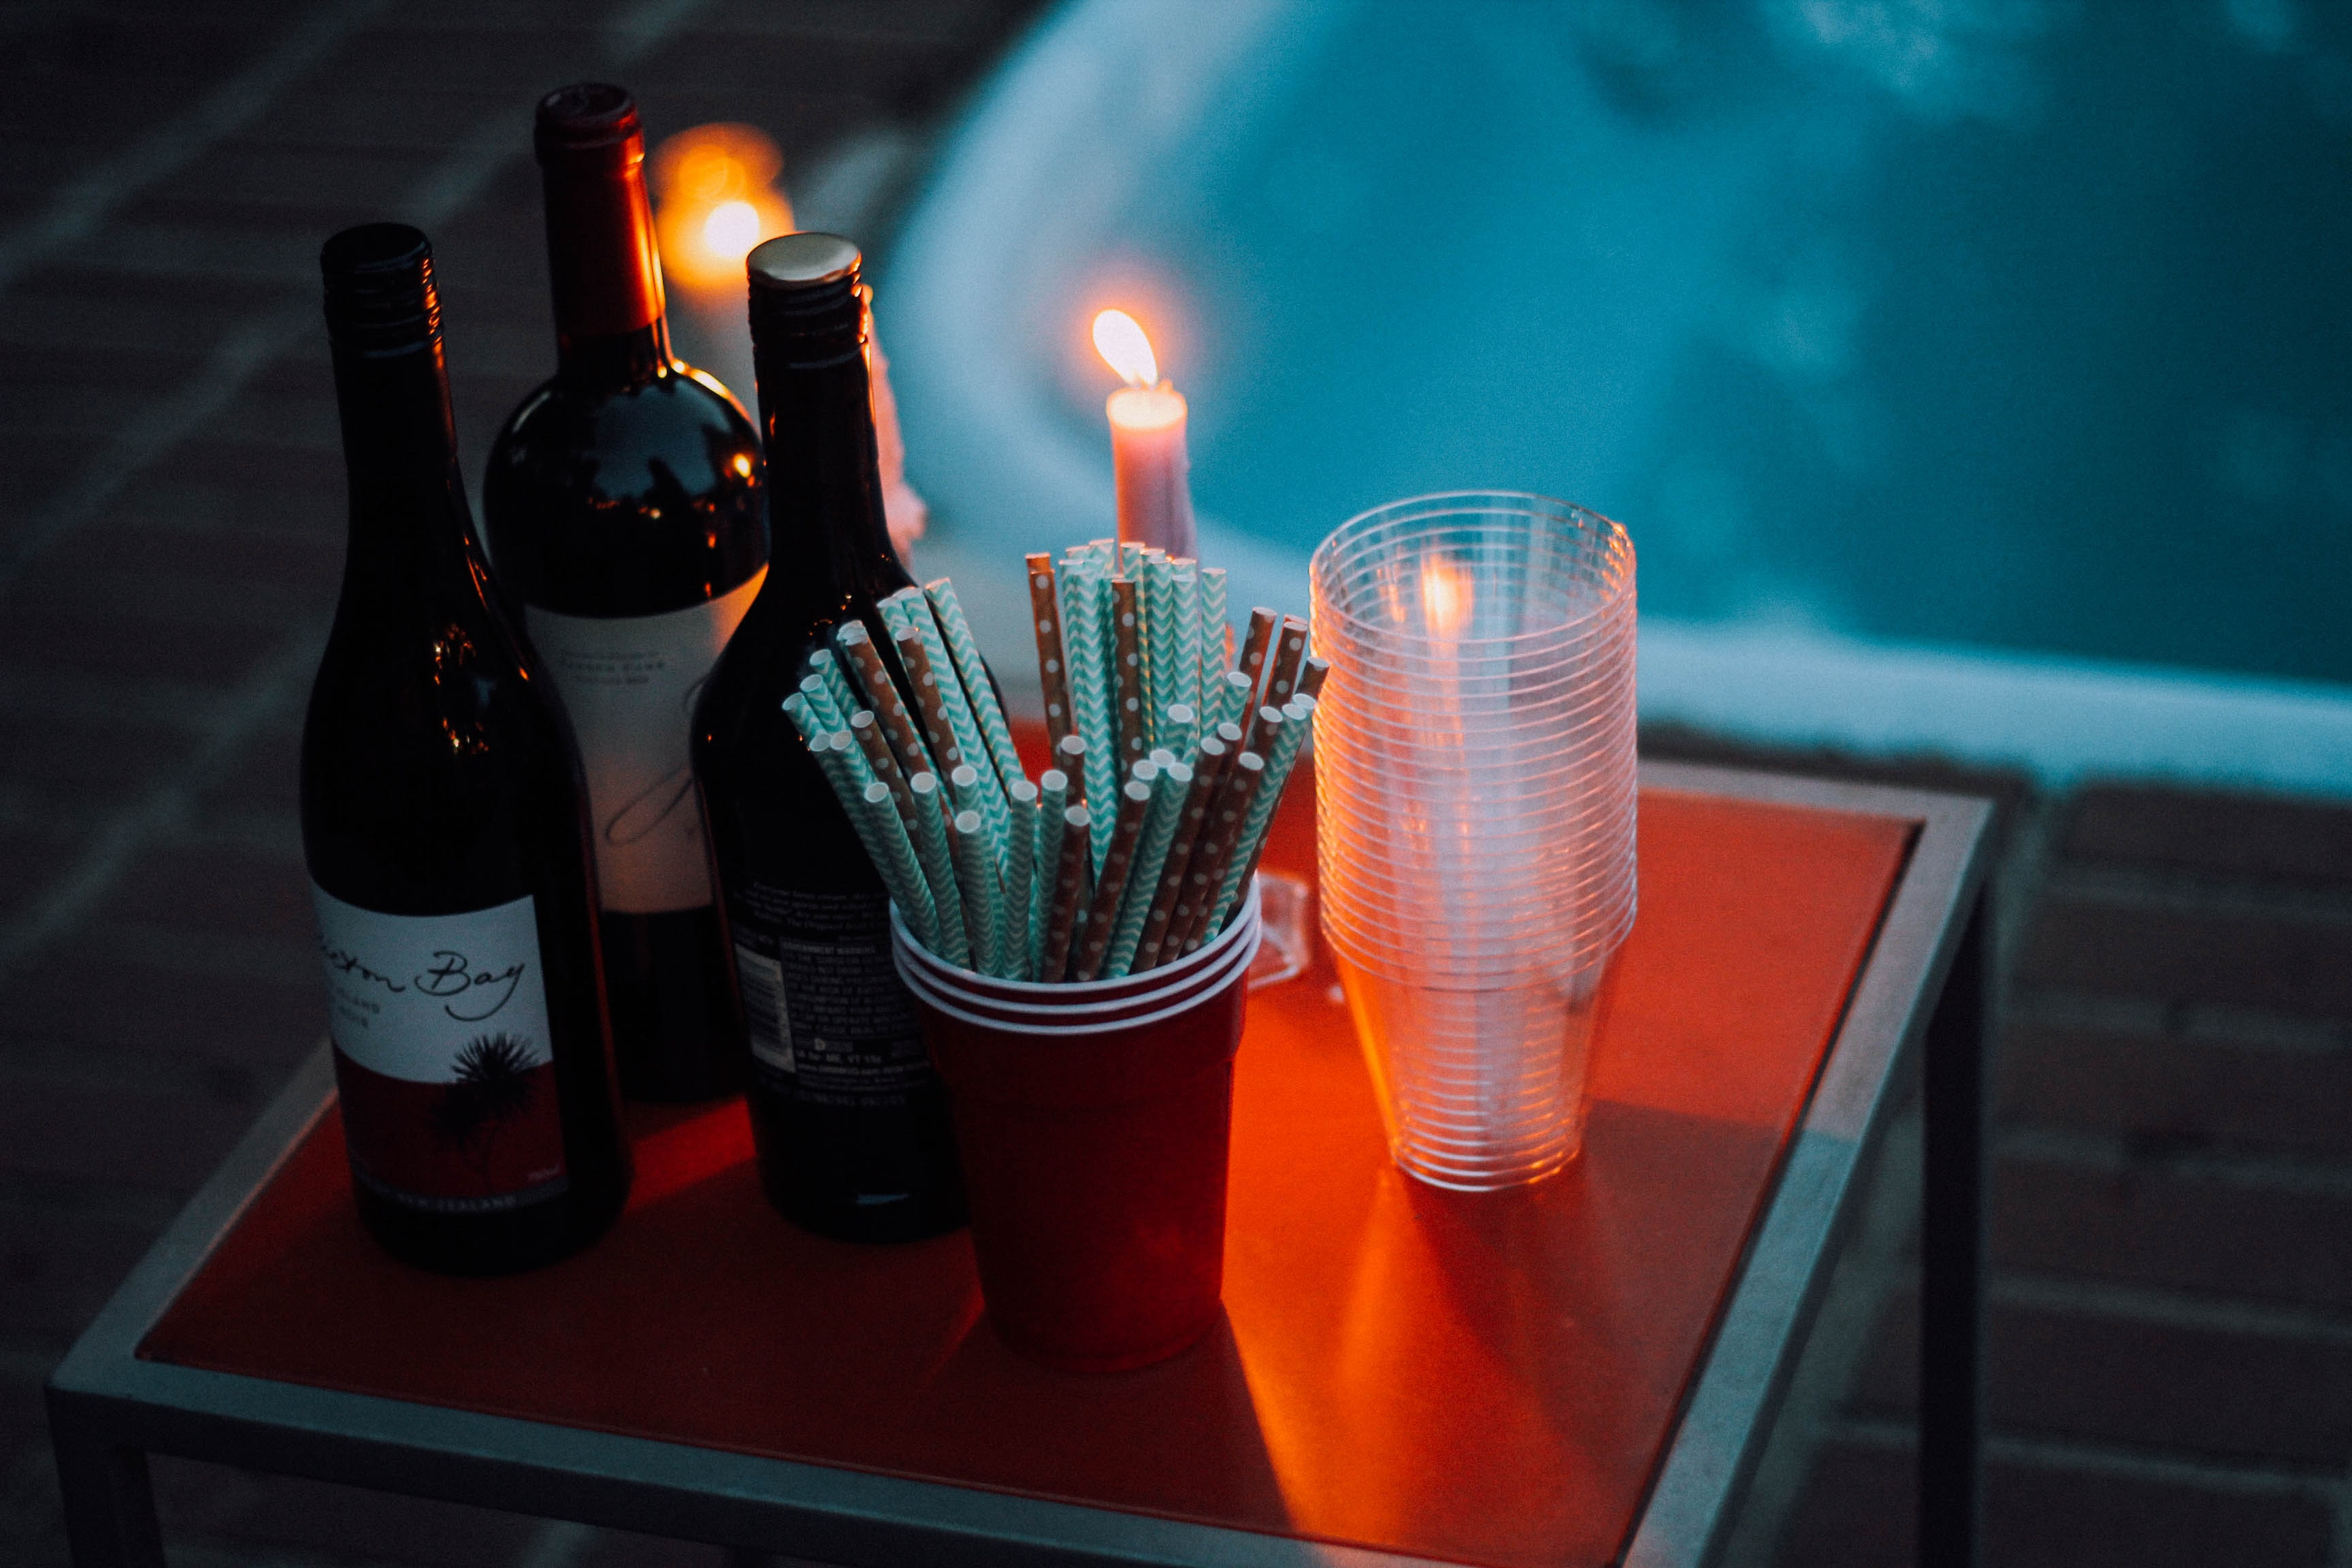 A tabletop containing wine, straws, candles with flames and plastic cups by a pool in redding